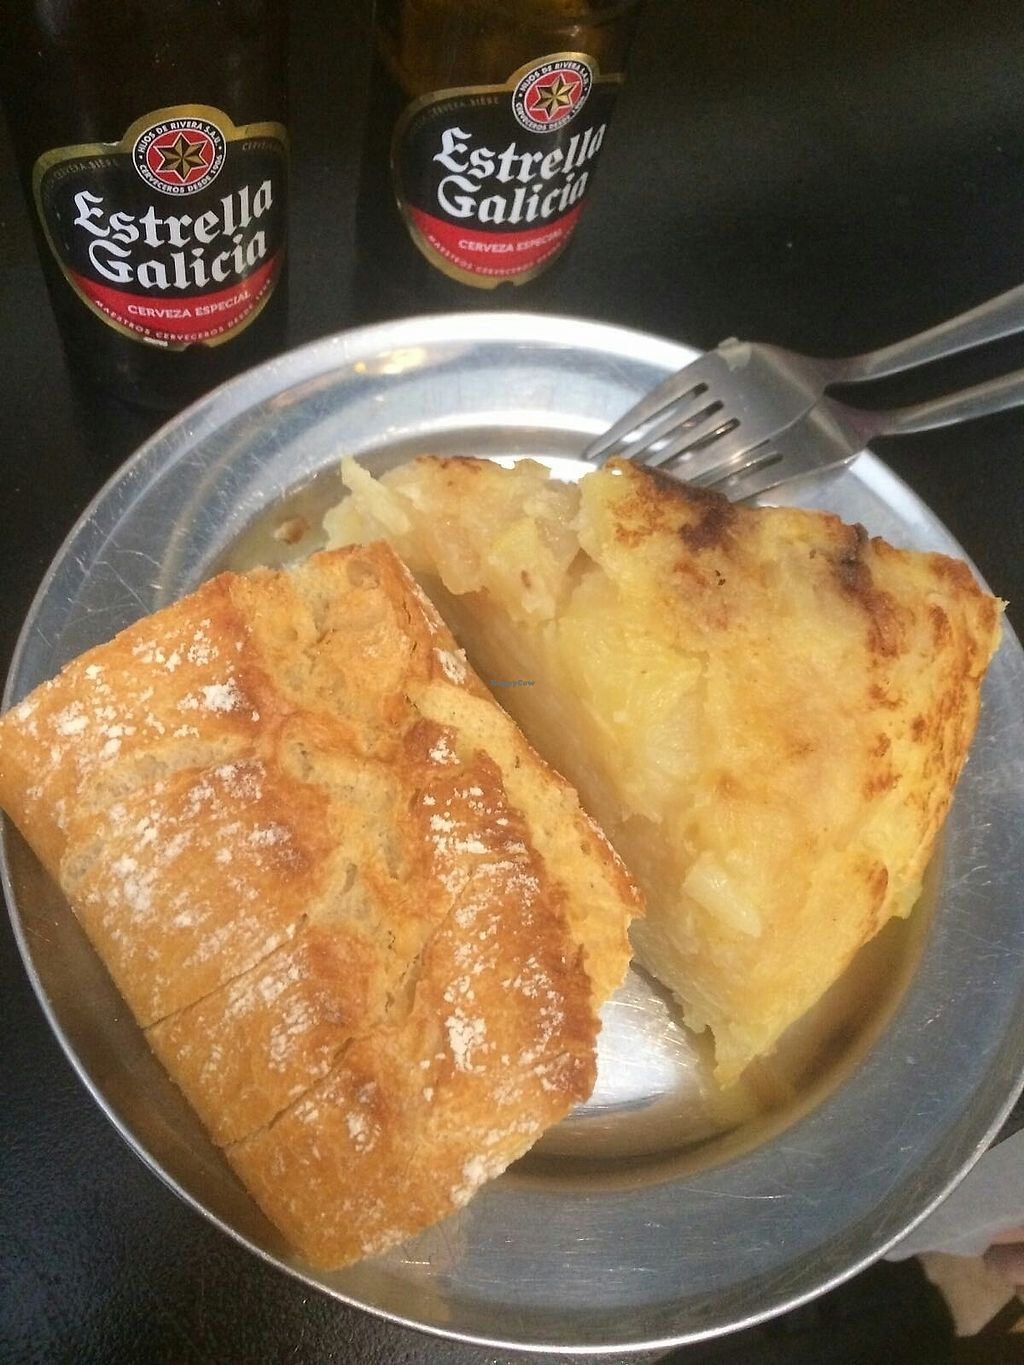 "Photo of B-13 Bar Restaurante  by <a href=""/members/profile/GallowsCalibrator"">GallowsCalibrator</a> <br/>Glorious Spanish omelette <br/> August 10, 2017  - <a href='/contact/abuse/image/34434/291206'>Report</a>"